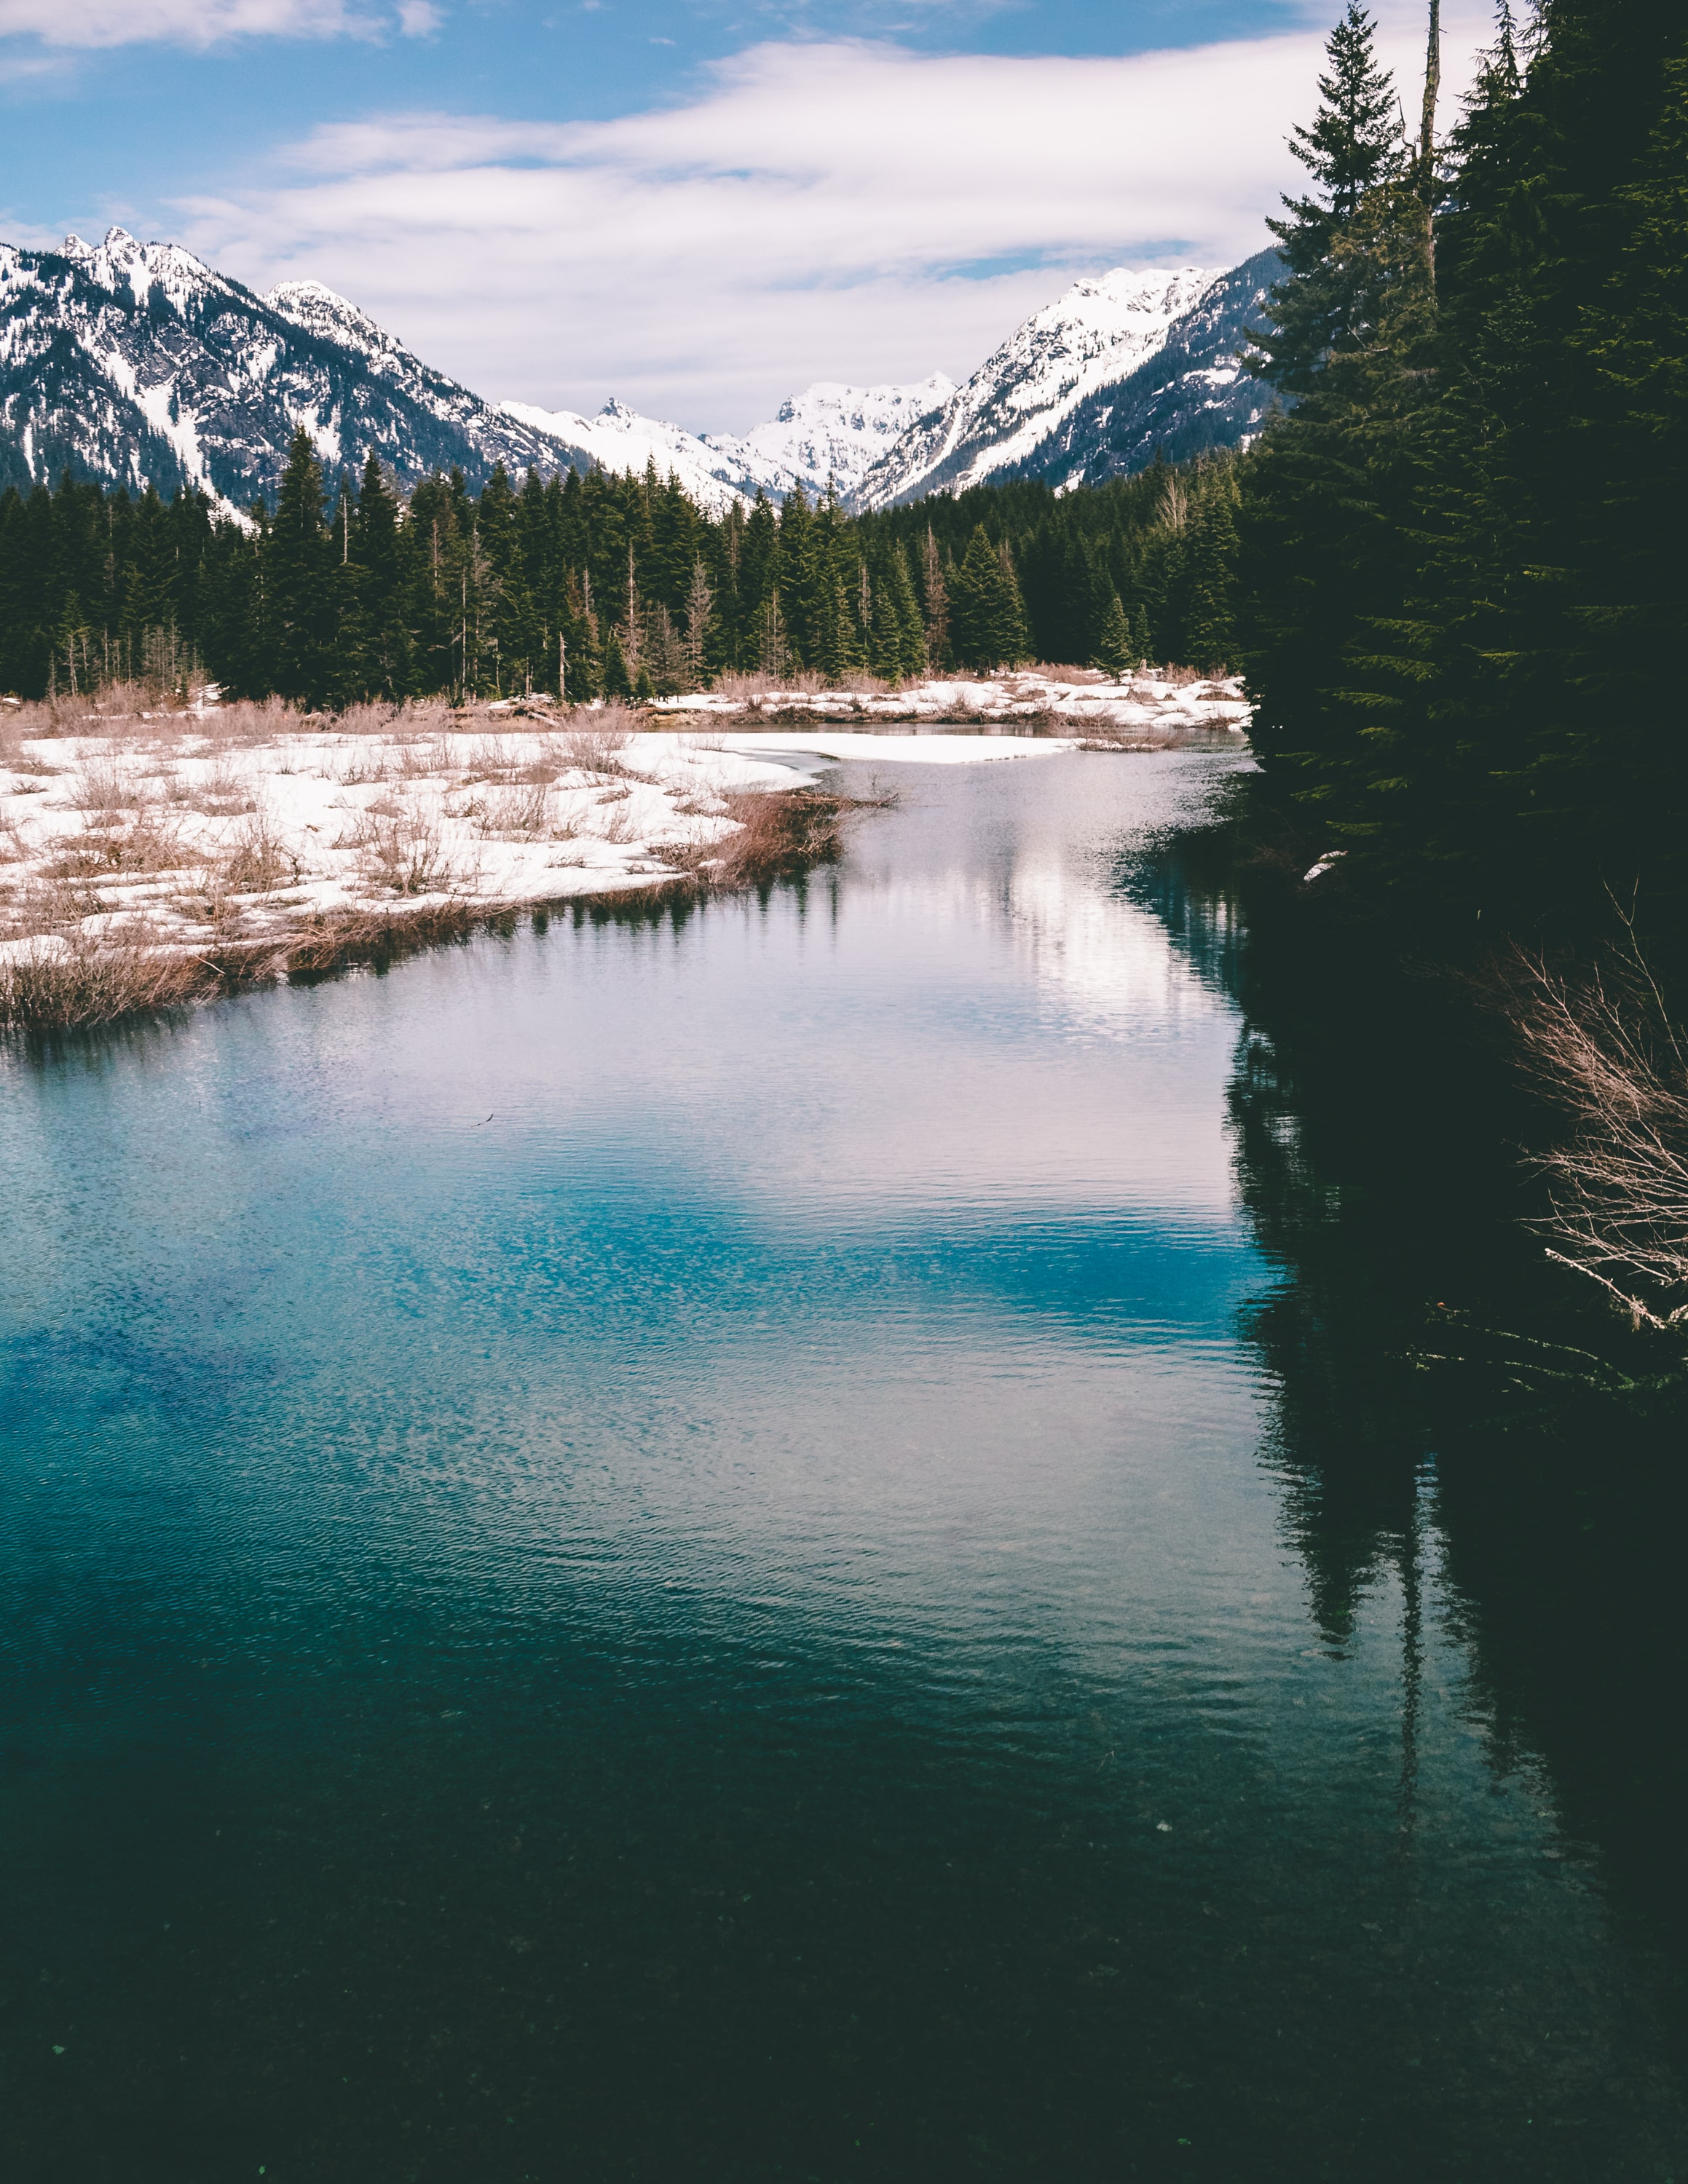 body of water near trees and mountain